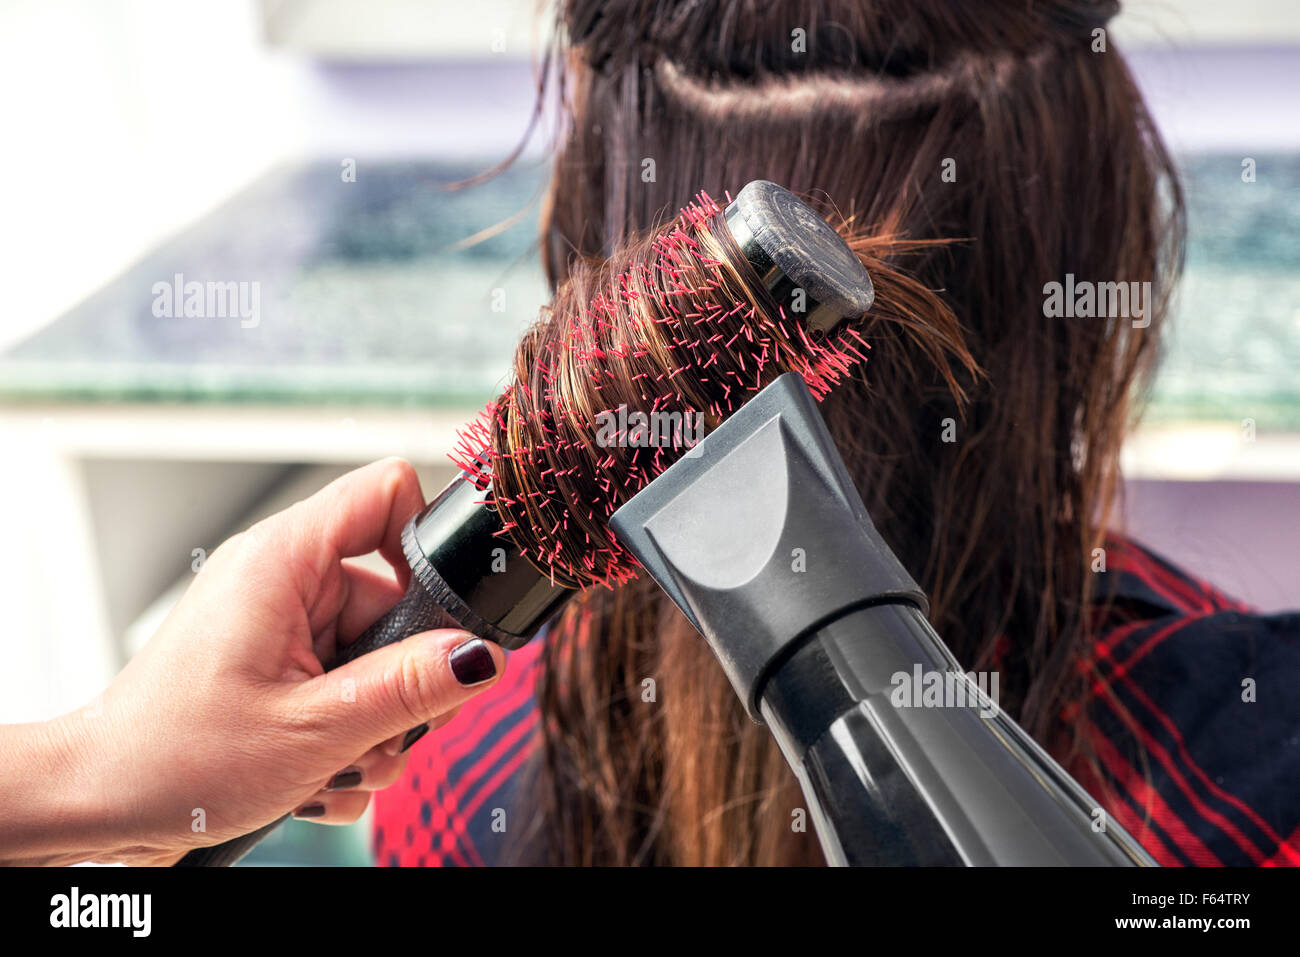 Hairstylist brushing the long brown hair of a woman in her hair salon - Stock Image